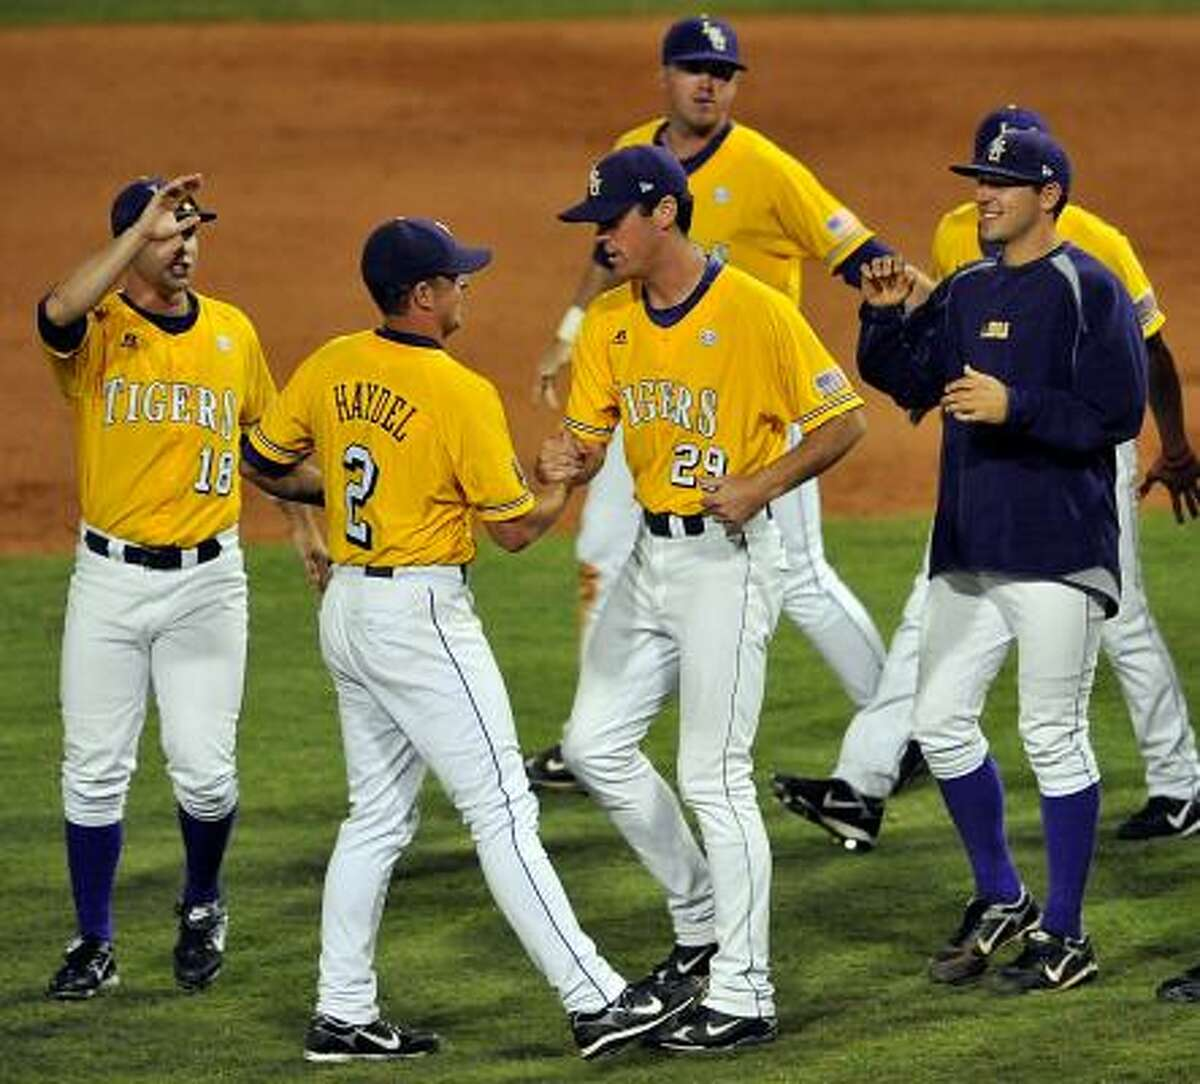 Baton Rouge (La.) Super Regional Game 1: LSU 12, Rice 9 LSU's Buzzy Haydel is congratulated by pitcher Louis Coleman after the Tigers won the opener of the best-of-three super regional.